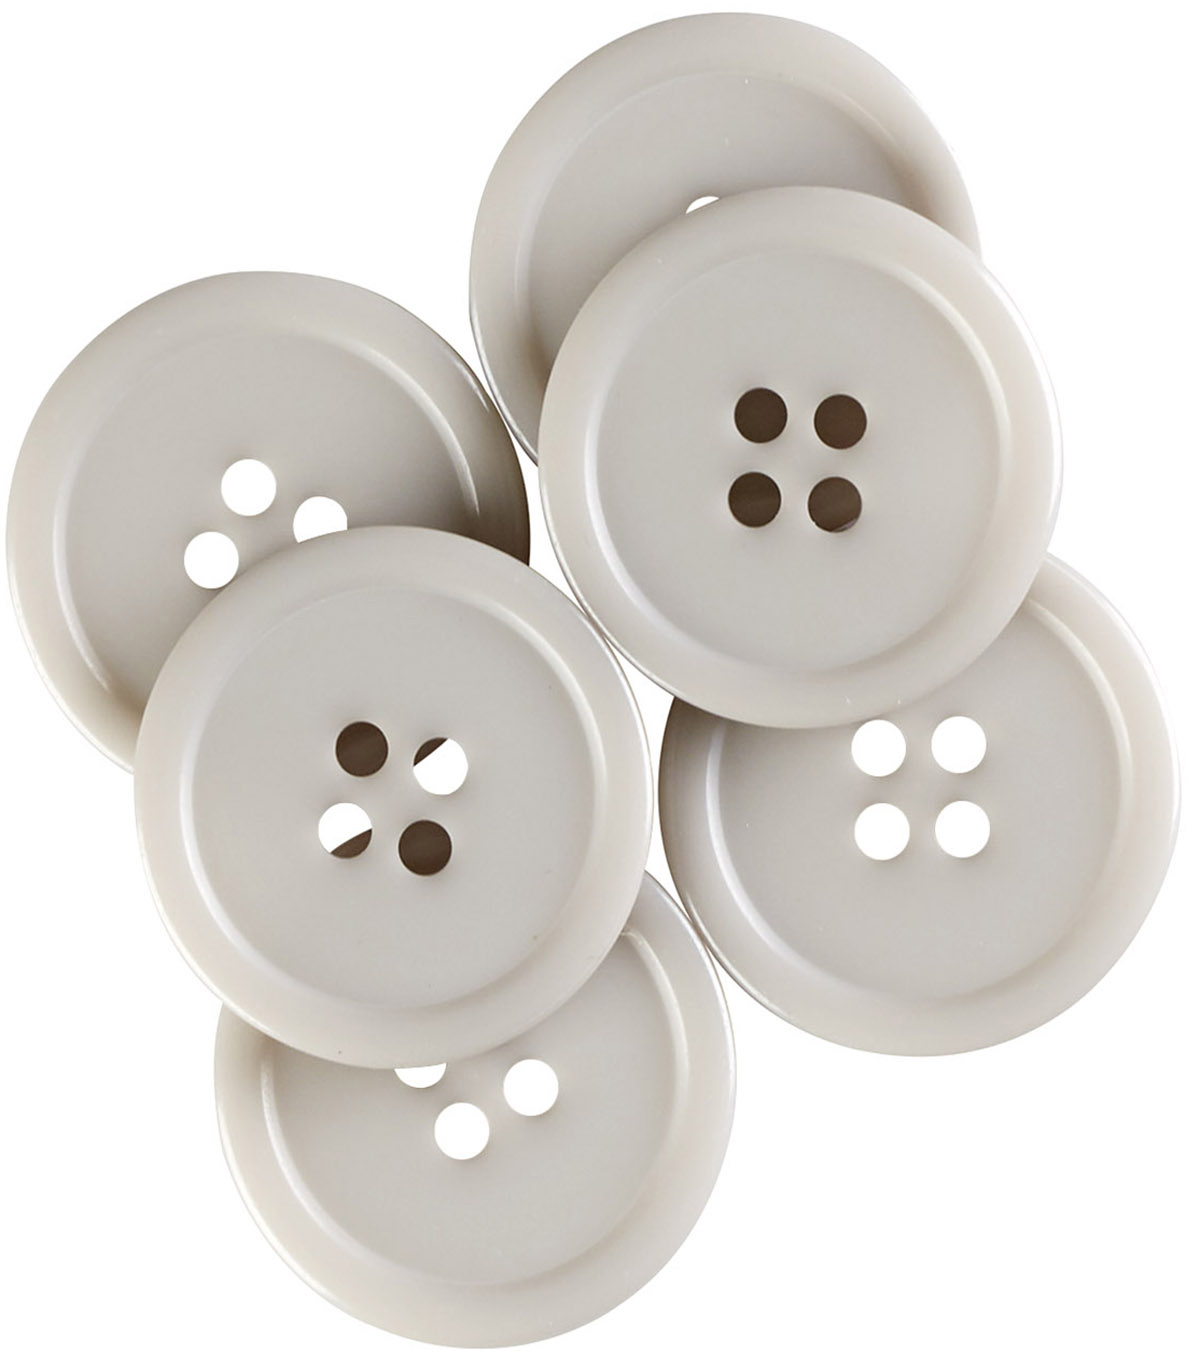 My Favorite Colors 6 pk 0.88'' Buttons Gray